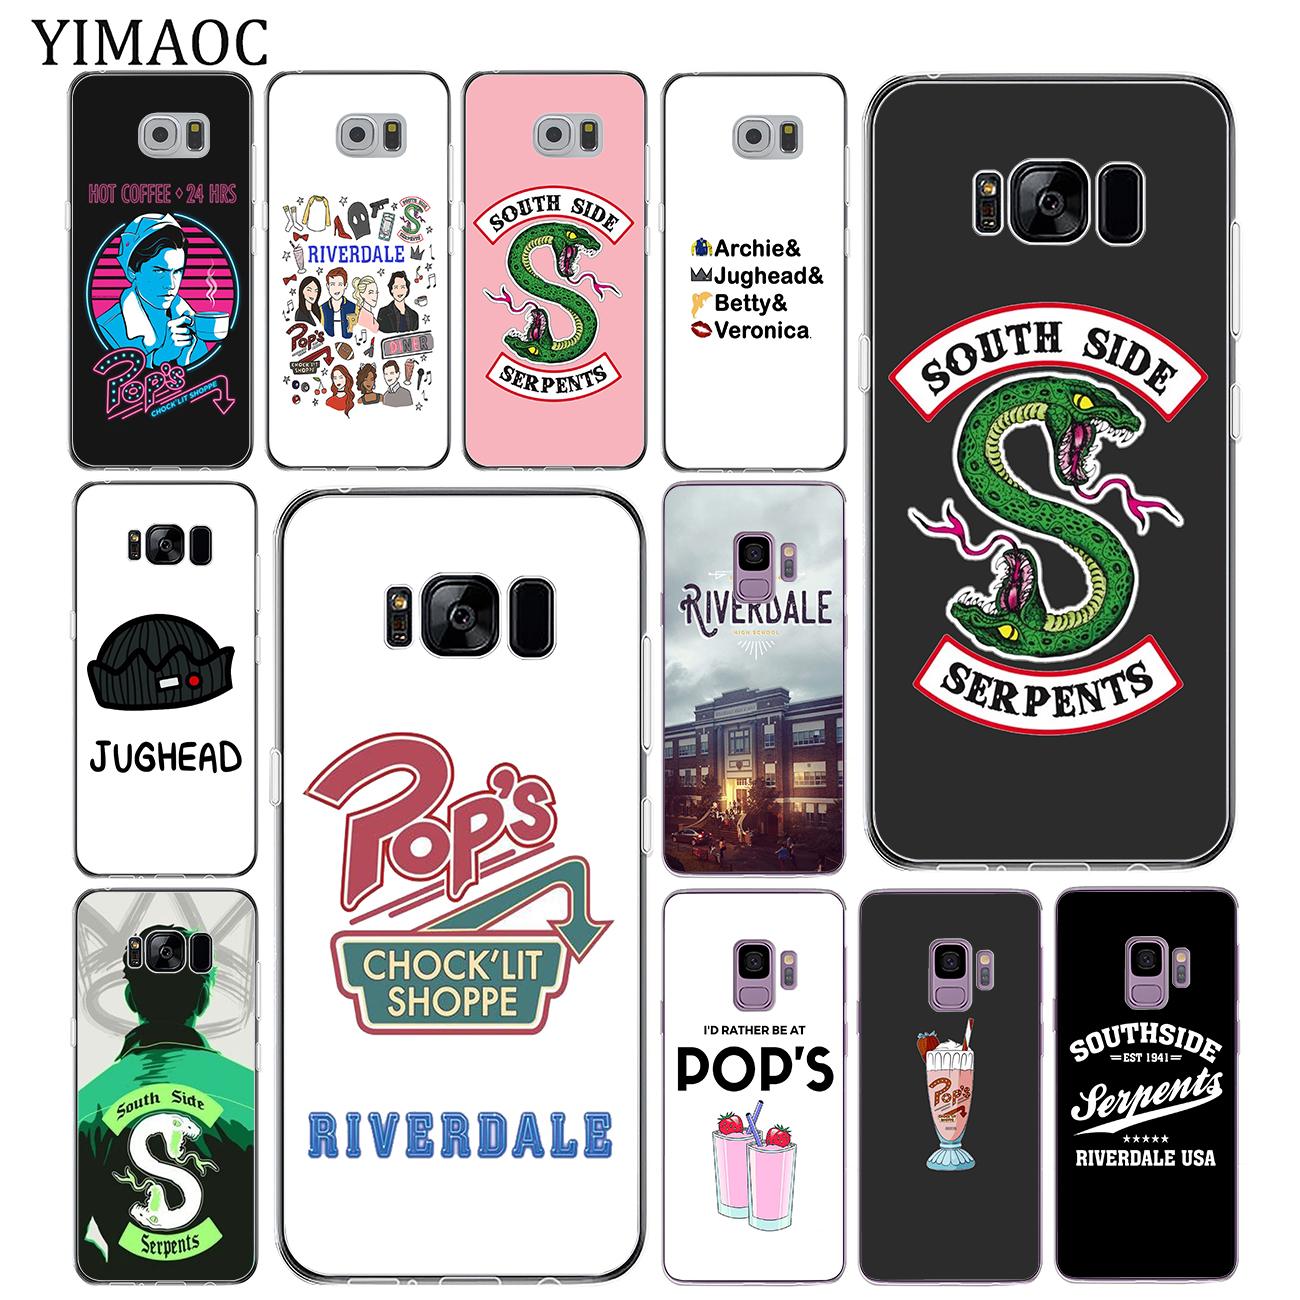 YIMAOC <font><b>Riverdale</b></font> South Side Serpents Weiche Tpu Silikon Telefon Fall für <font><b>Samsung</b></font> <font><b>Galaxy</b></font> S10 S9 <font><b>S8</b></font> Hinweis 10 Plus S7 rand S10e Abdeckung image